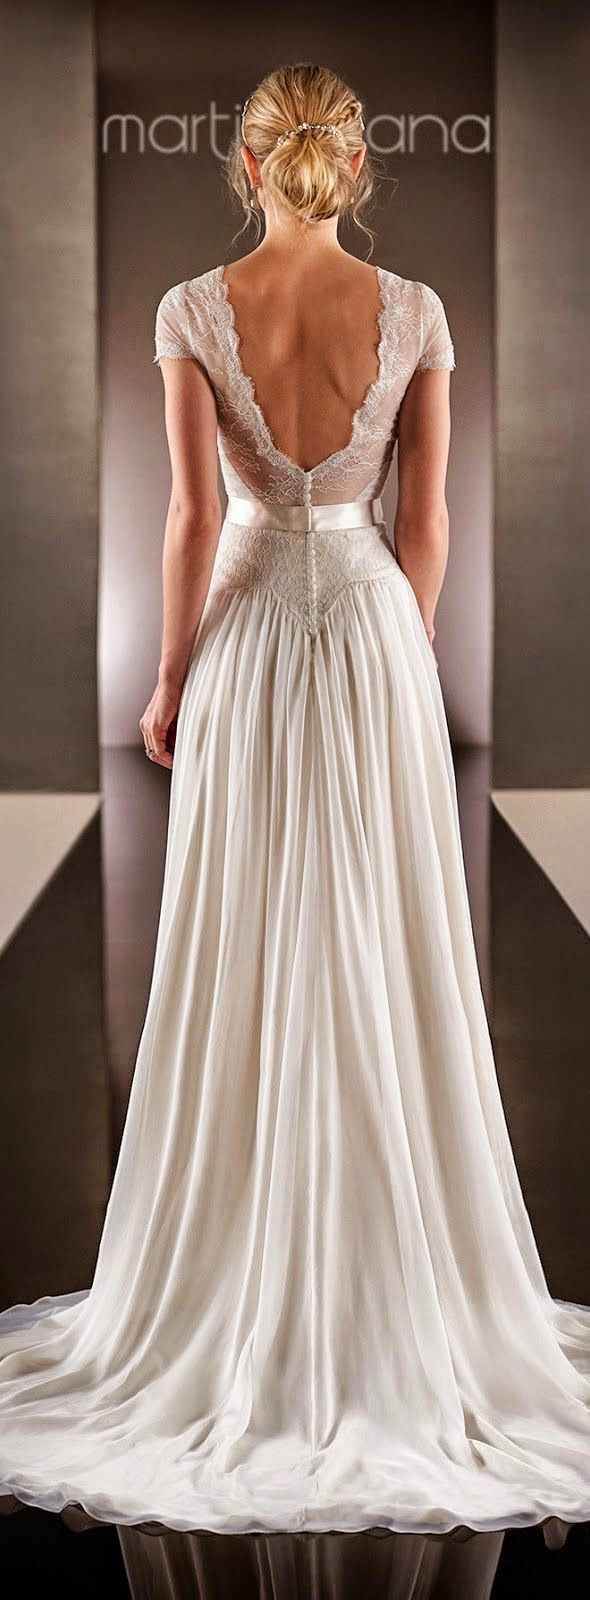 Martina Liana 2015 wedding dress